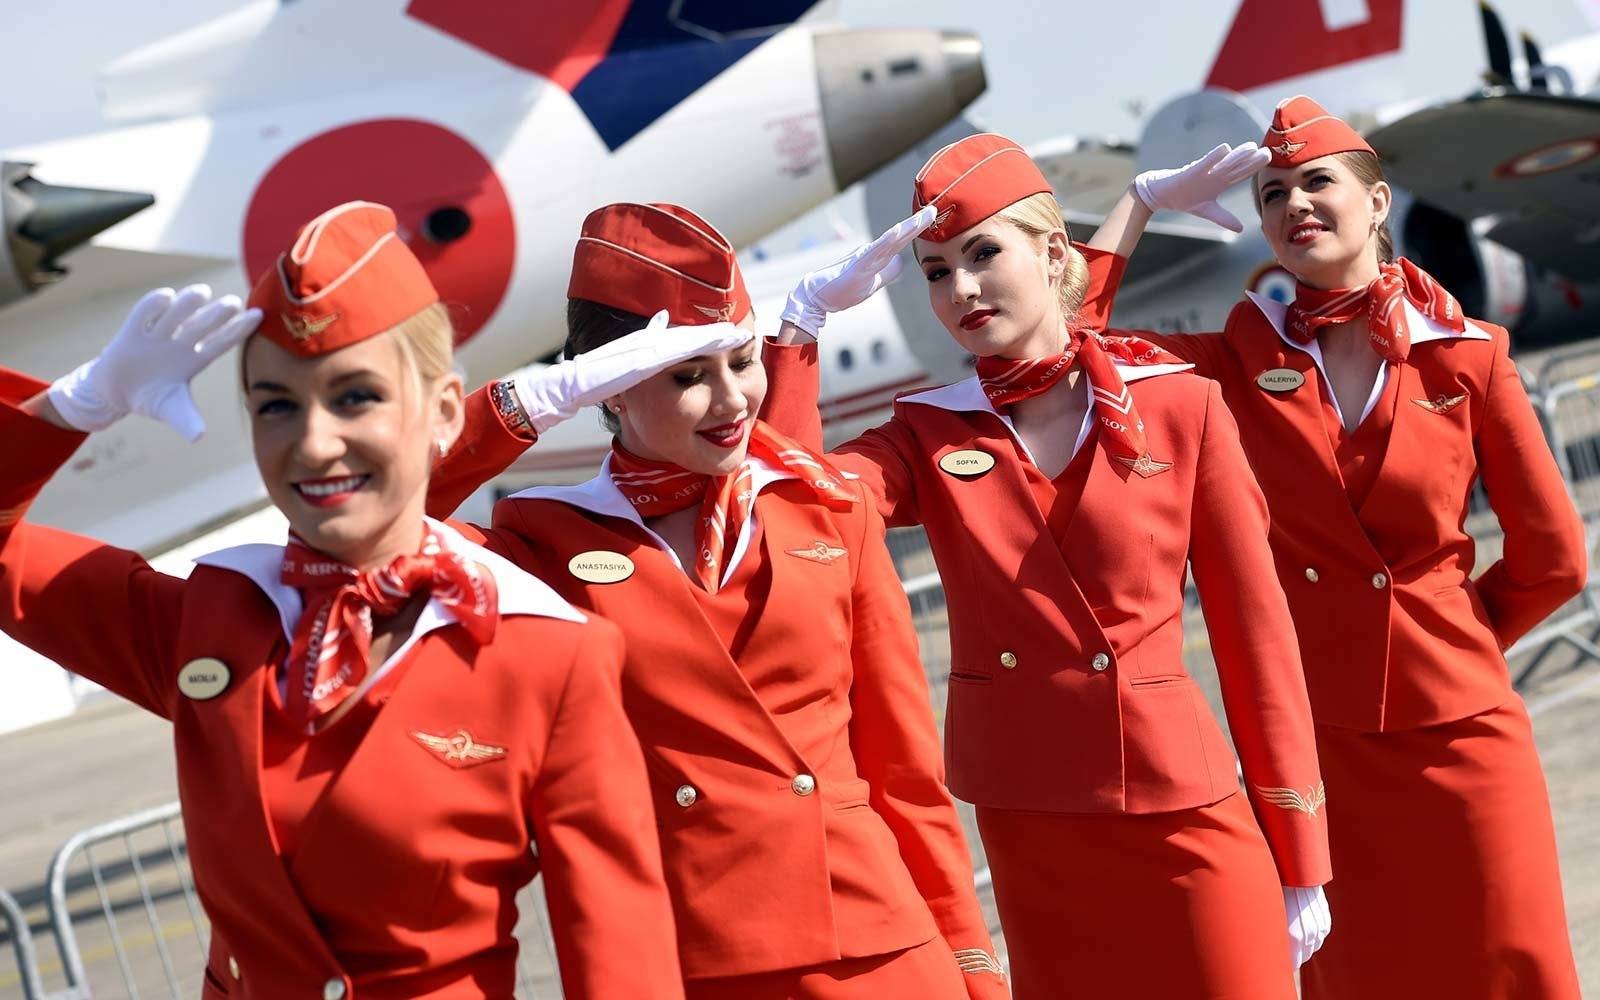 Cabin crew of the Russian airline Aeroflot